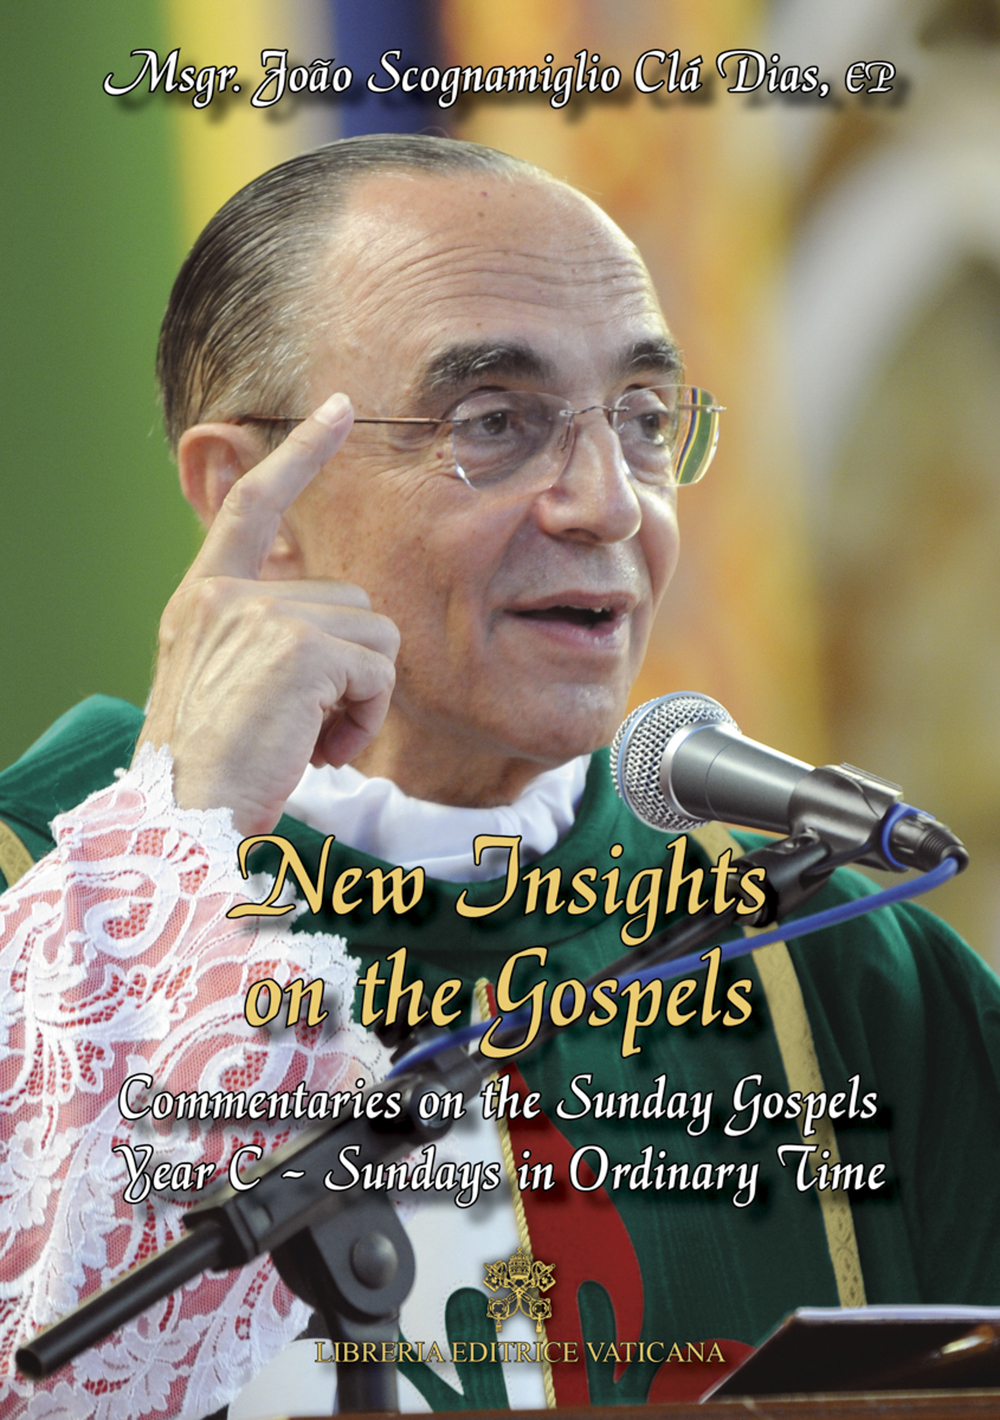 """New Insights on the Gospels - Volume 6 - Year C (2016)   $9.97 tax incl.   Volume VI: Year C (2016)– Sundays in Ordinary Time -A joint publication of Libreria Editrice Vaticana and the Heralds of the Gospel -  Available on eBook format - 450 pages - Download now!    Dr Scott Hahn , Fr. Scanlan Chair of Biblical Theology and New Evangelization at the Franciscan University of Steubenville, OH, comments: """"What a remarkable movement is the Heralds ! I spent my time this afternoon at JFK airport and my flight back to Pittsburgh reading New Insights- with great profit and excitement. I am so impressed by Msgr. Scognamiglio's profound insight into Scripture as well as the spiritual wisdom that he communicates so clearly.""""   """"New Insights on the Gospels"""" Volume VI , commentaries on the Sunday Gospels corresponding to Year C Sundays in Ordinary Time is part of a collection that enables you to accompany Our Lord Jesus Christ throughout every Sunday of the liturgical year, together with the founder of the Heralds of the Gospel.    Also available on iTunes      Also available on Googlebooks      Also available on Amazon Kindle"""